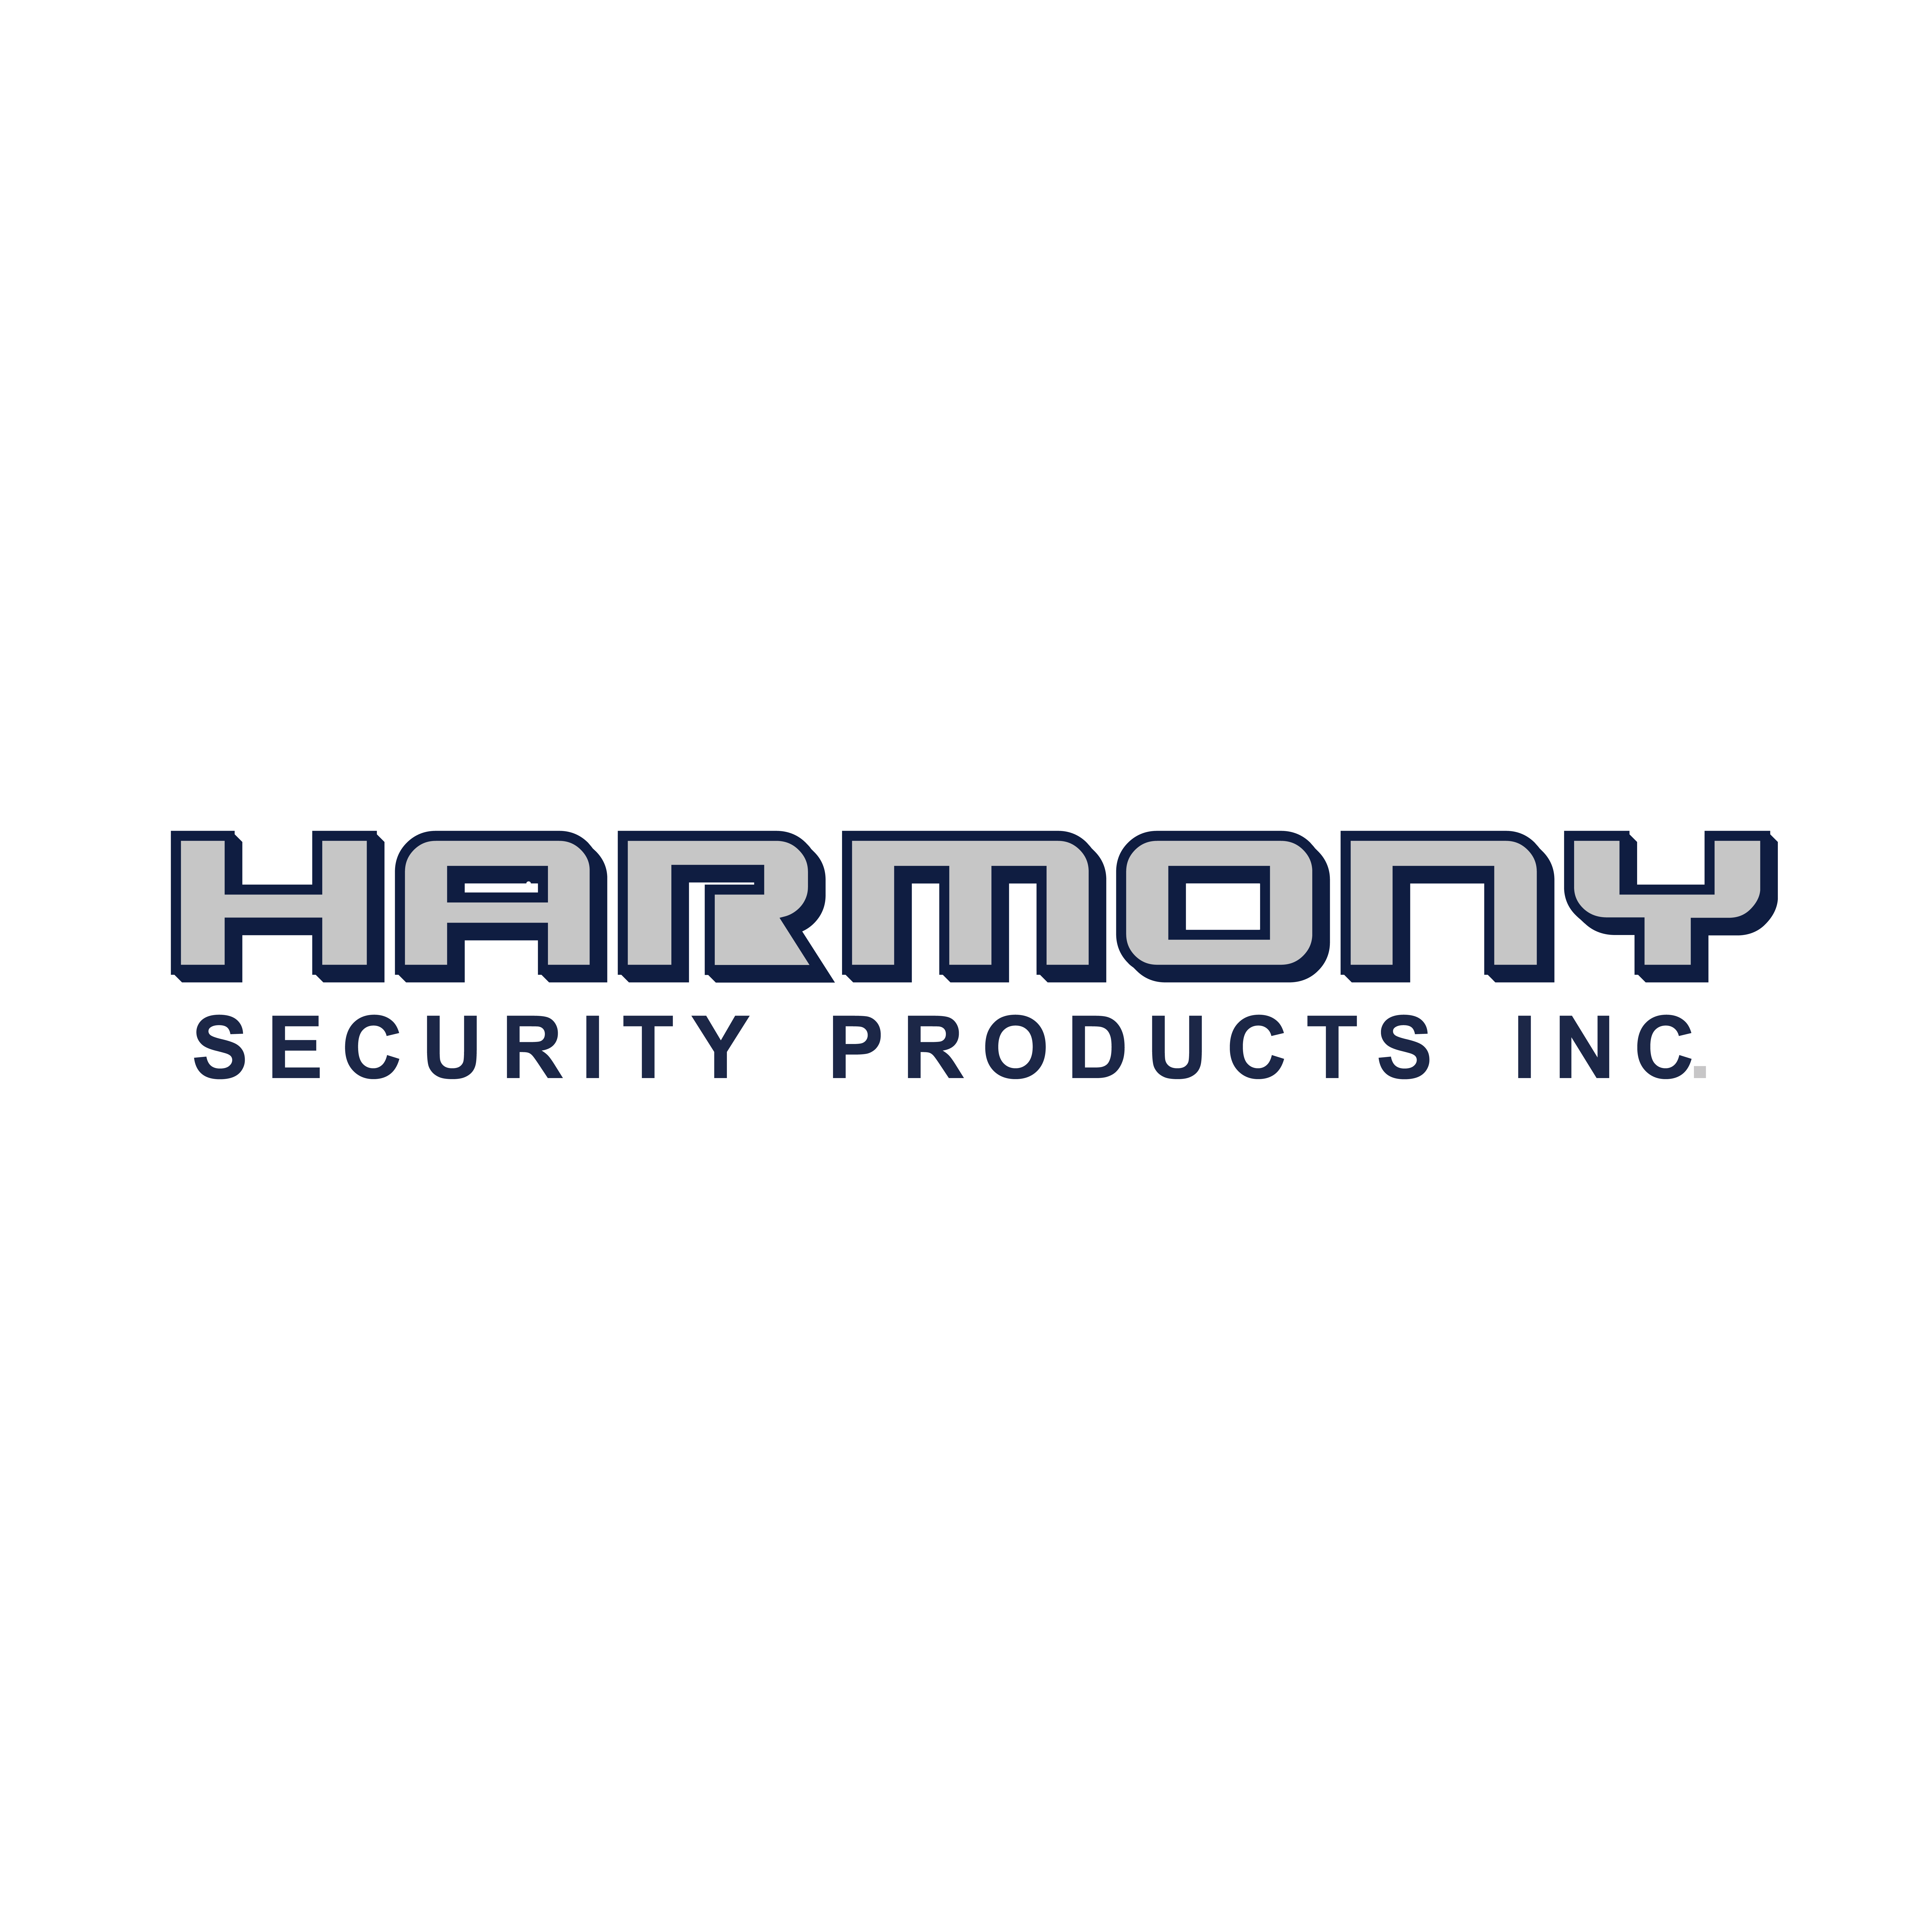 Harmony Security Products